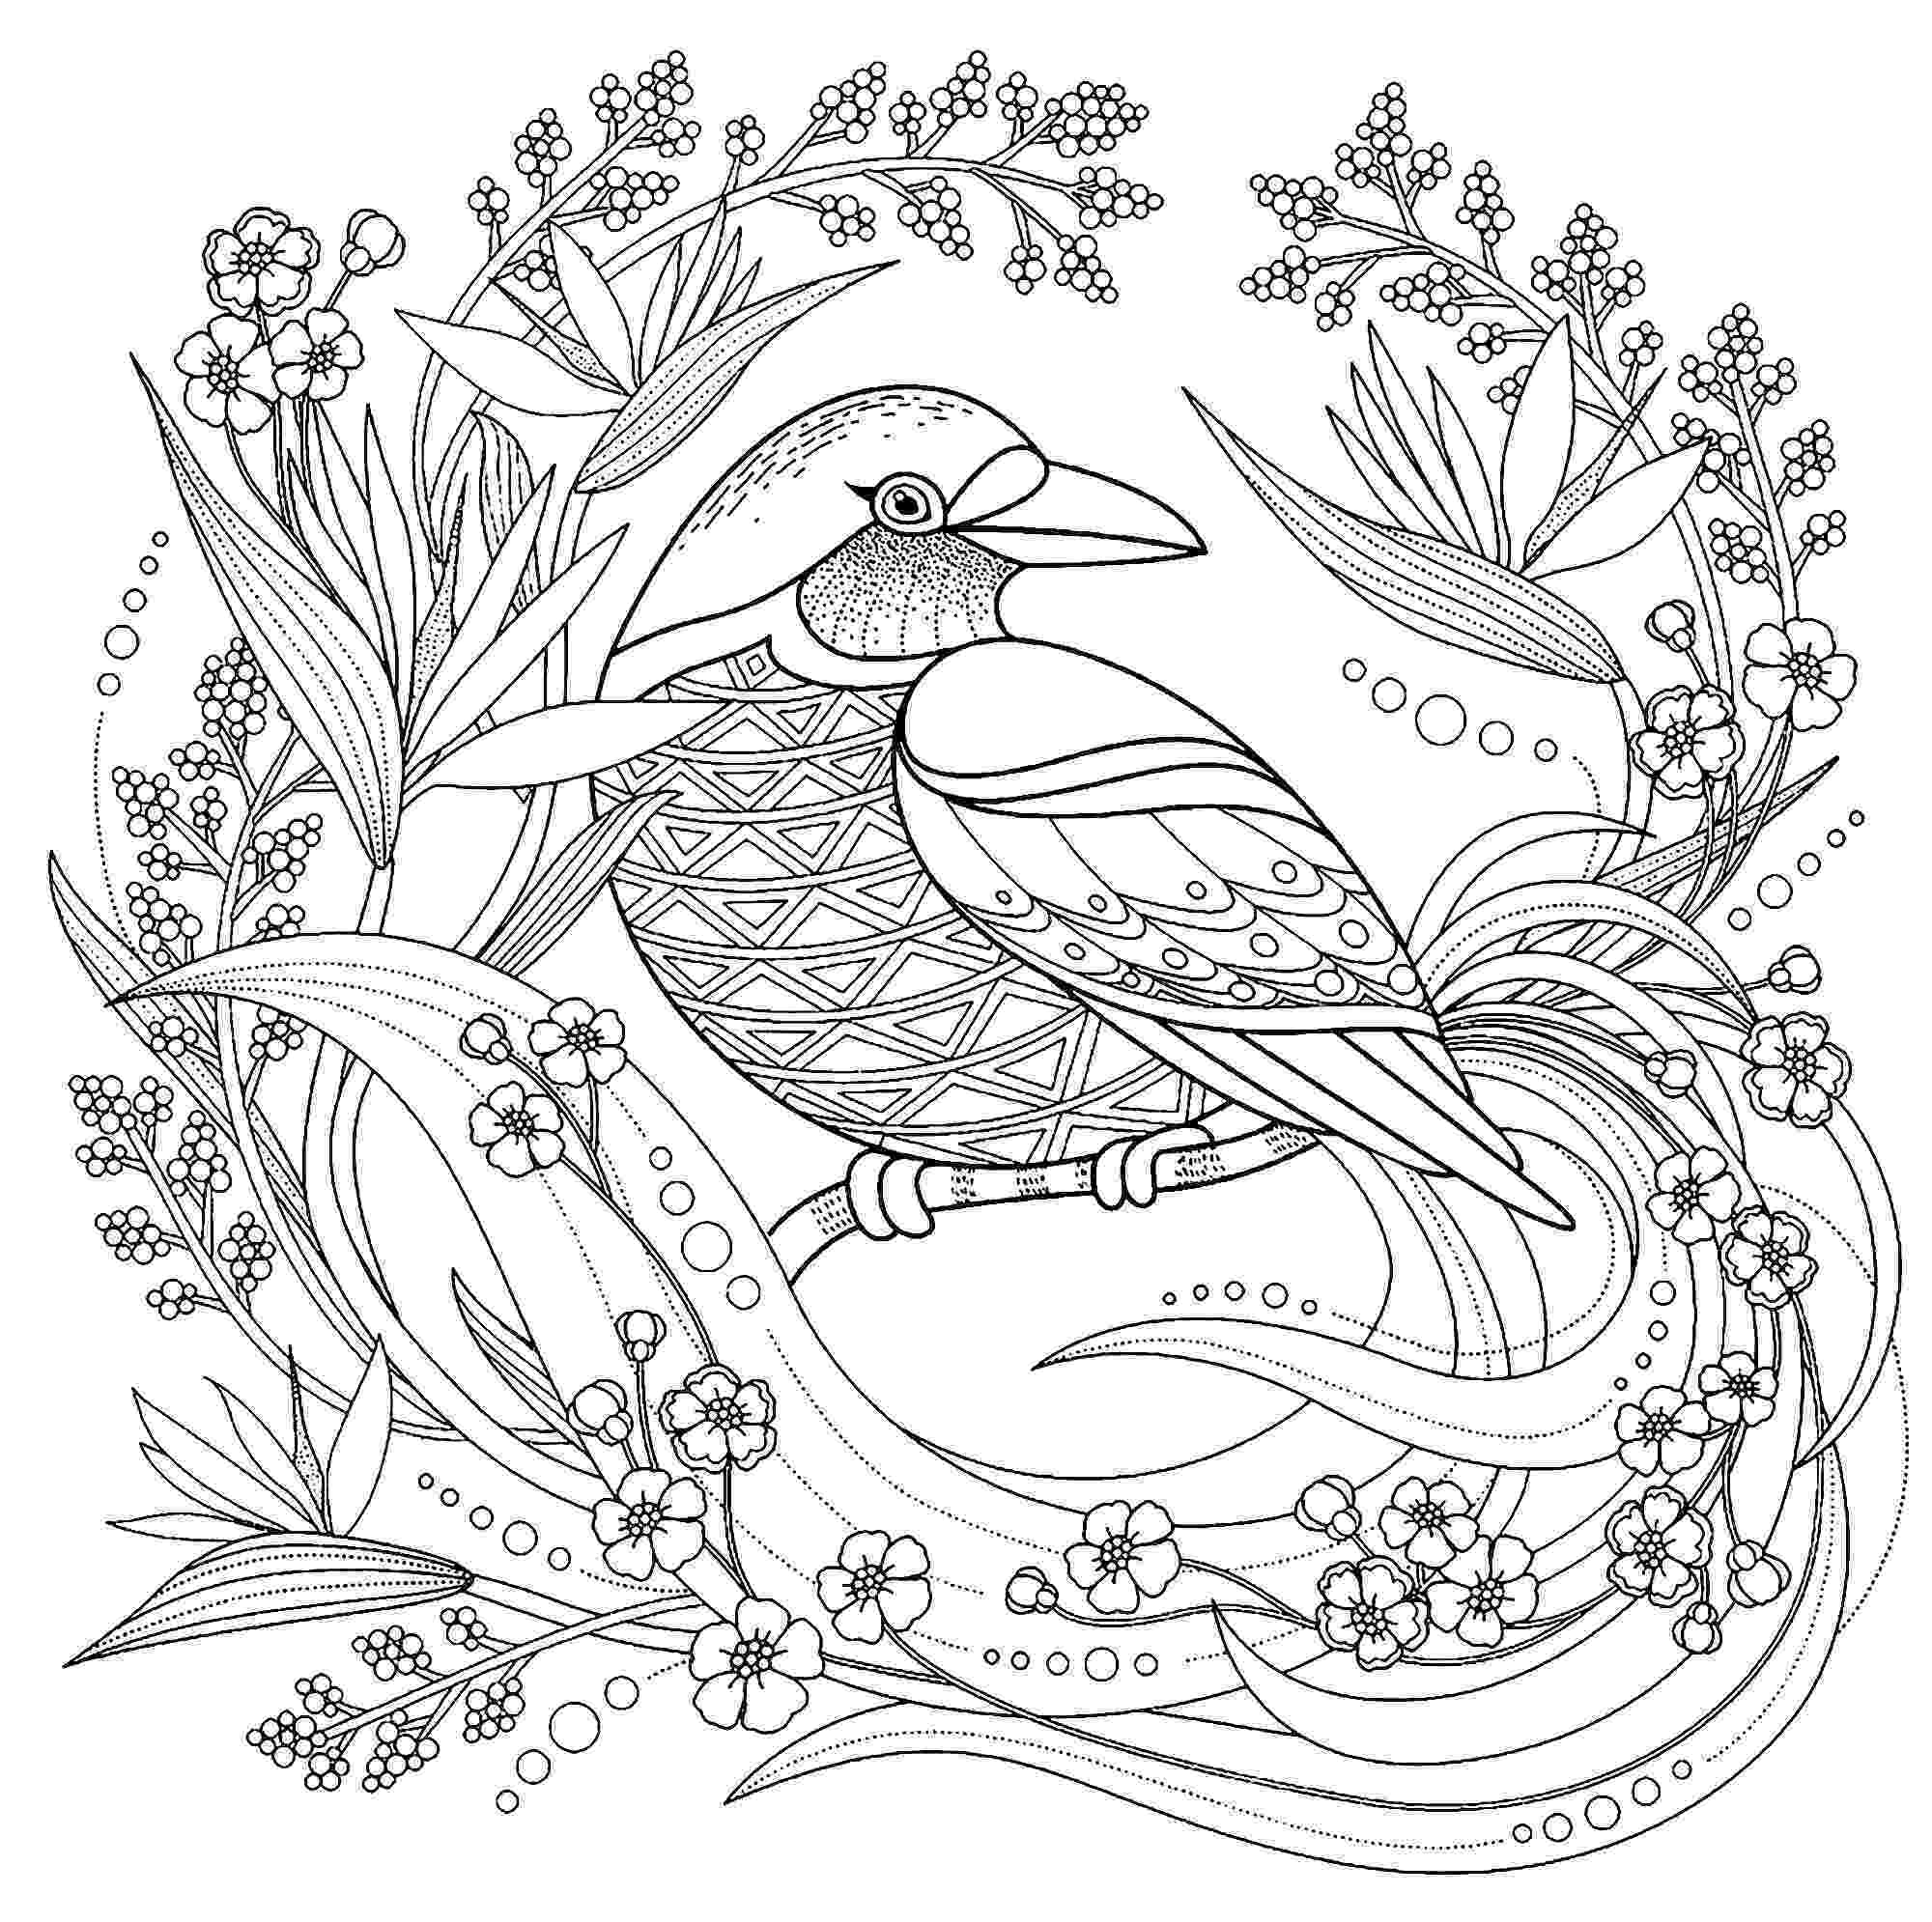 pictures of birds to colour line art coloring page bird with blossoms the birds pictures of to colour